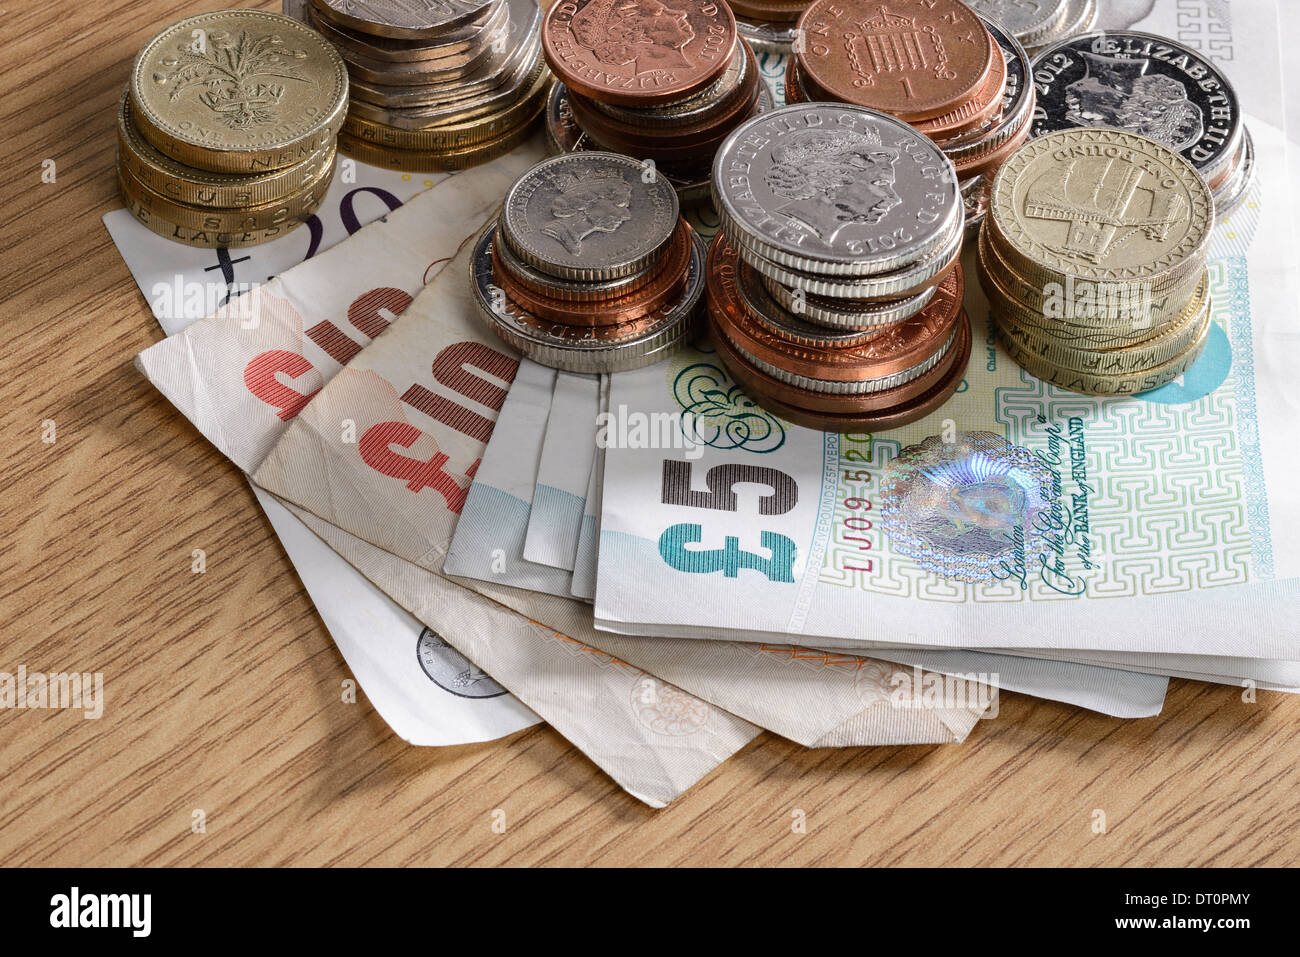 Pile of UK sterling cash notes and coins - Stock Image